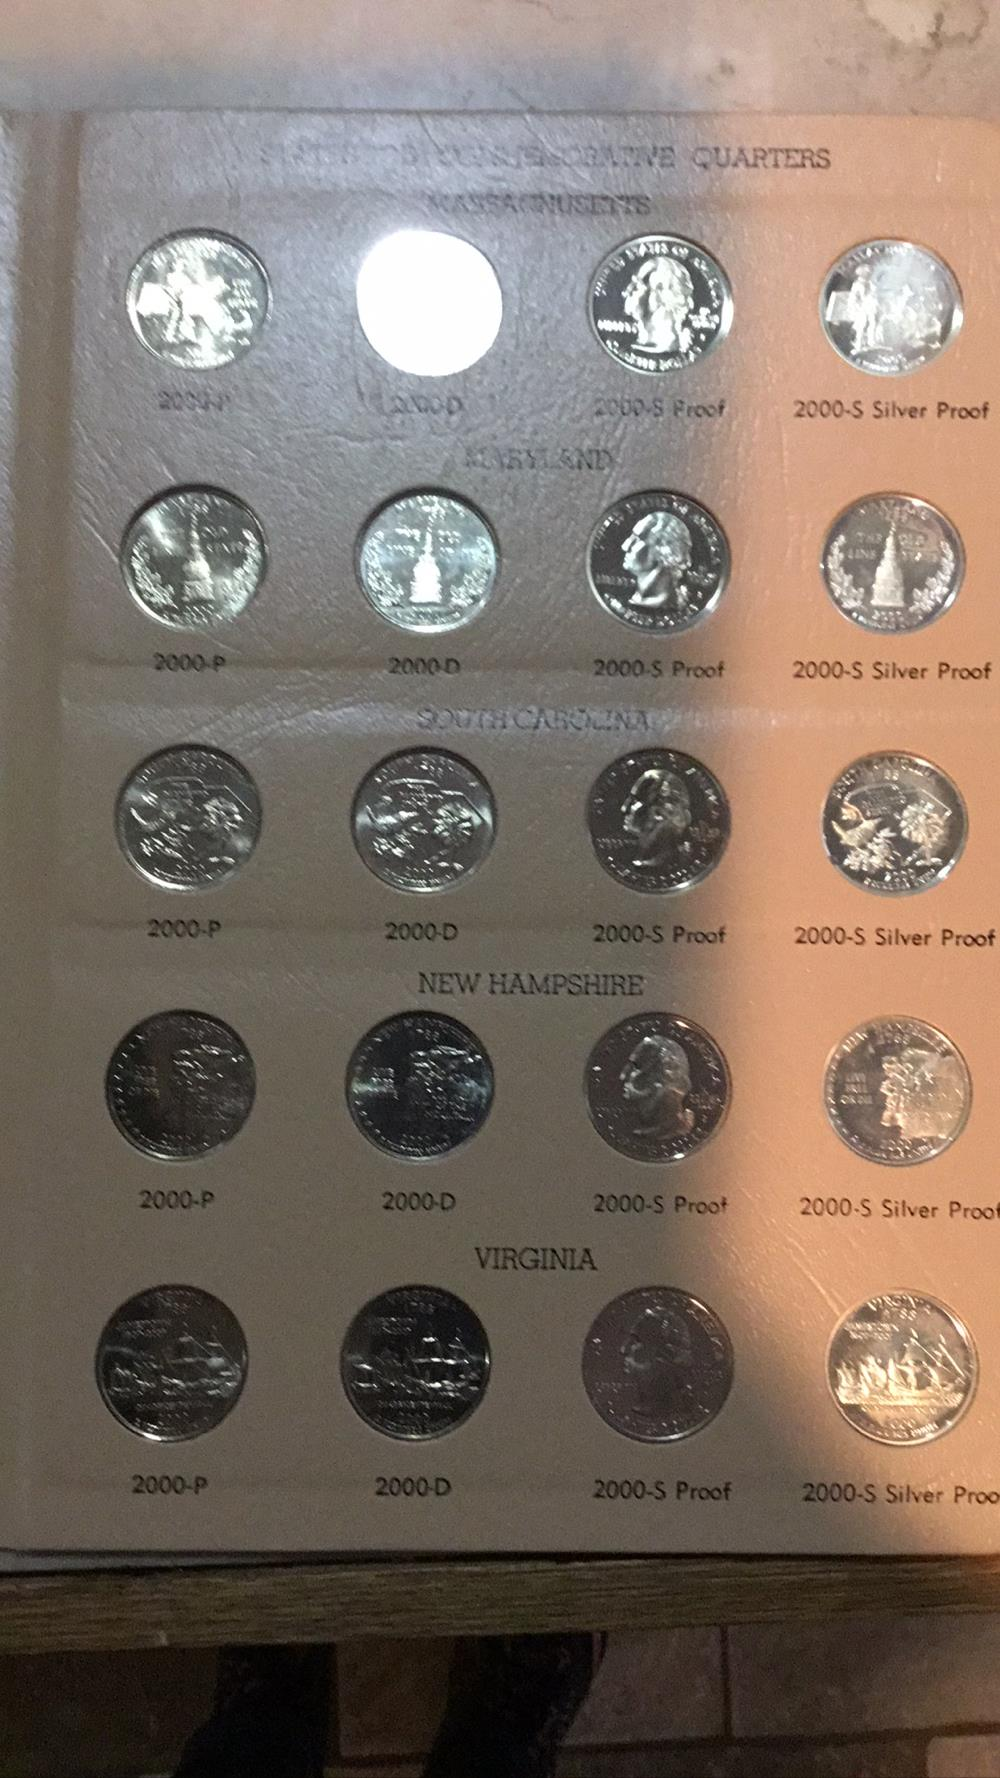 Statehood commemorative quarters